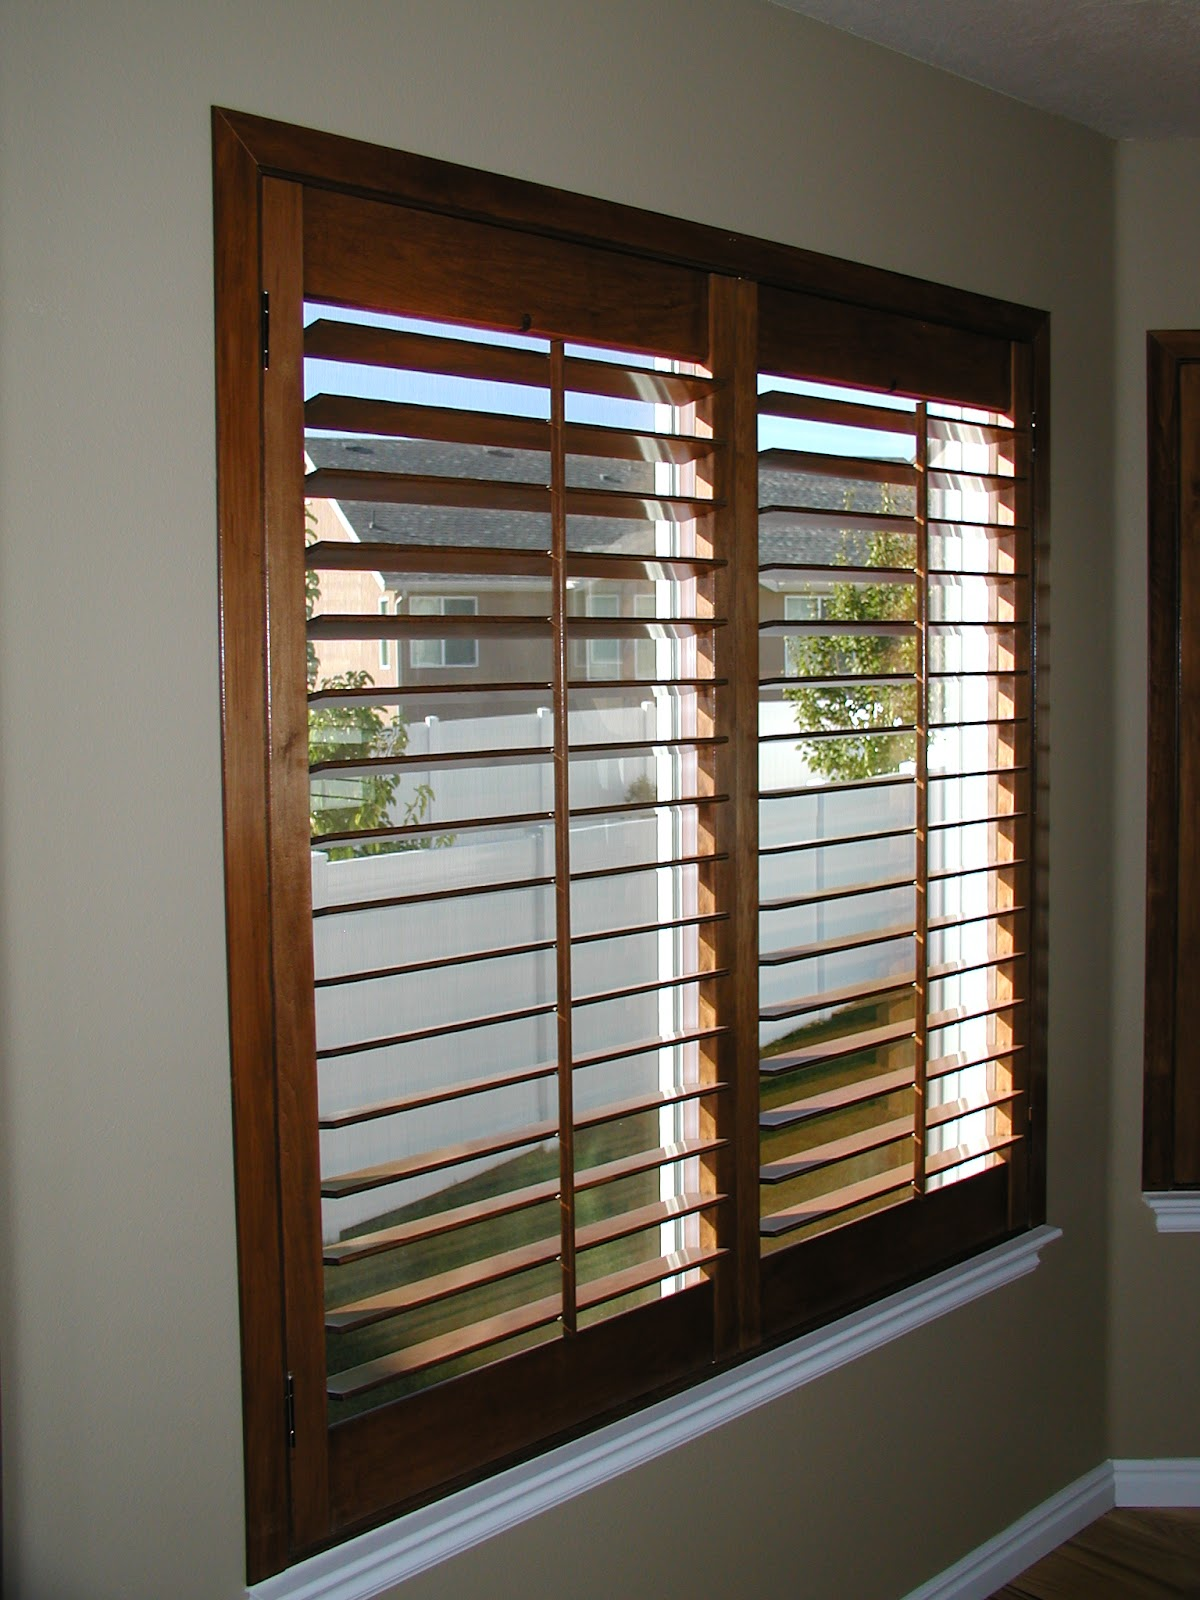 Stanfield Shutter Co Autumn Plantation Shutters